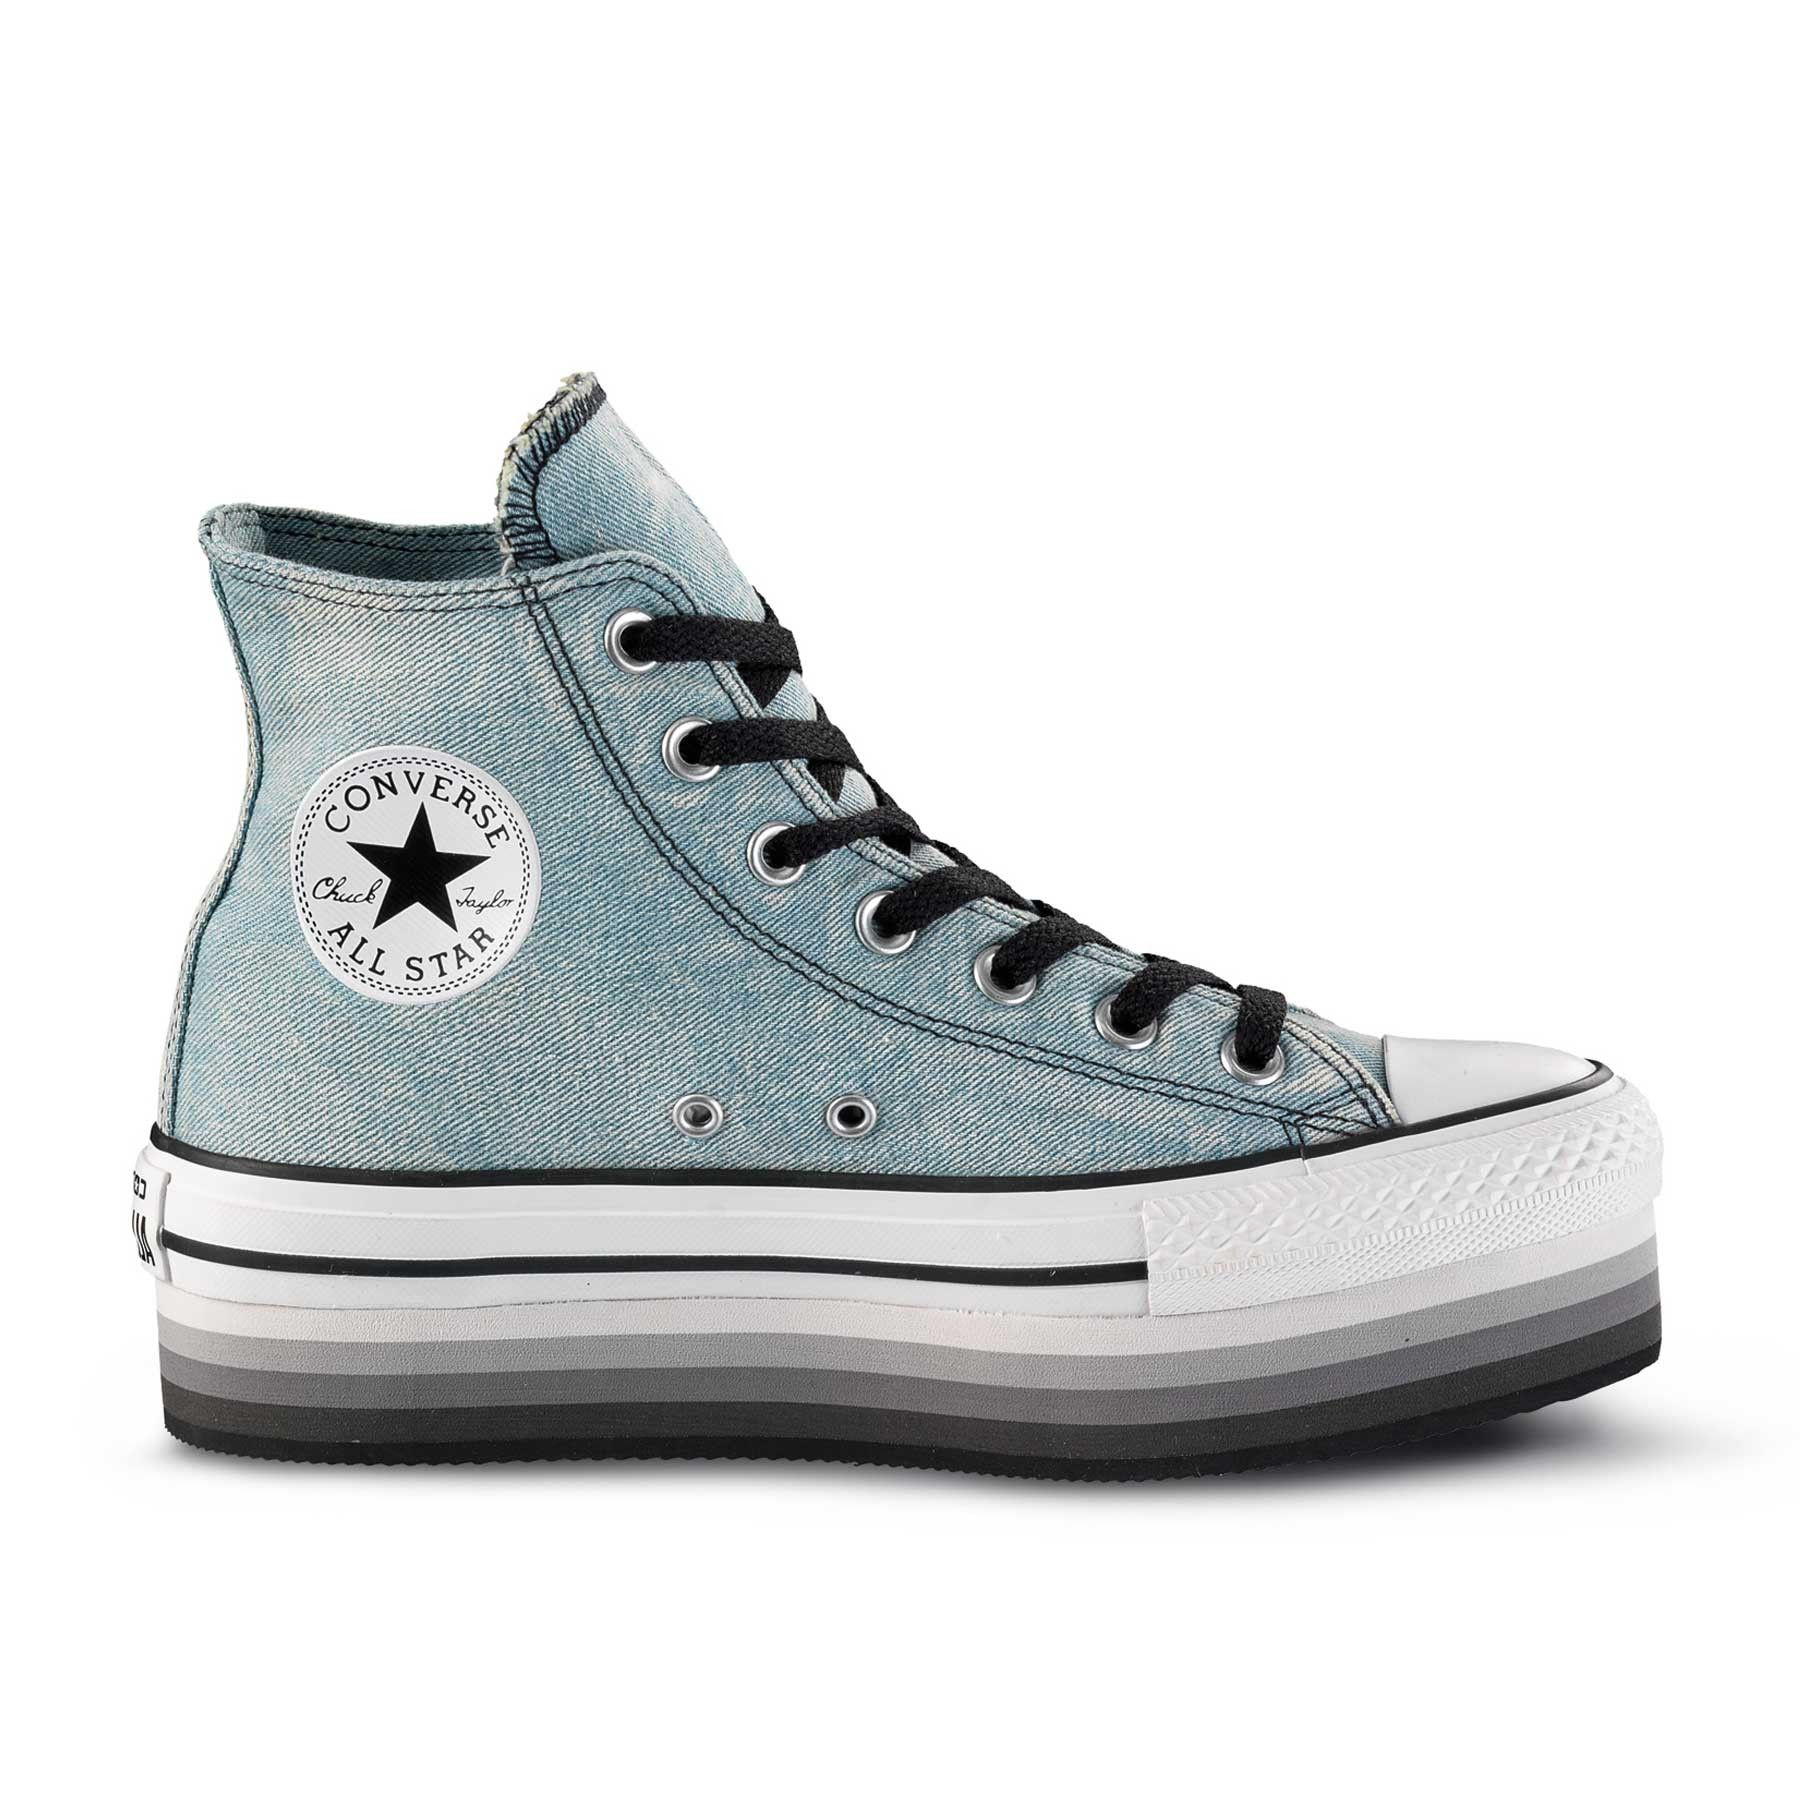 CONVERSE ALL STAR HI PLATFORM denim Sneaker Scarpe